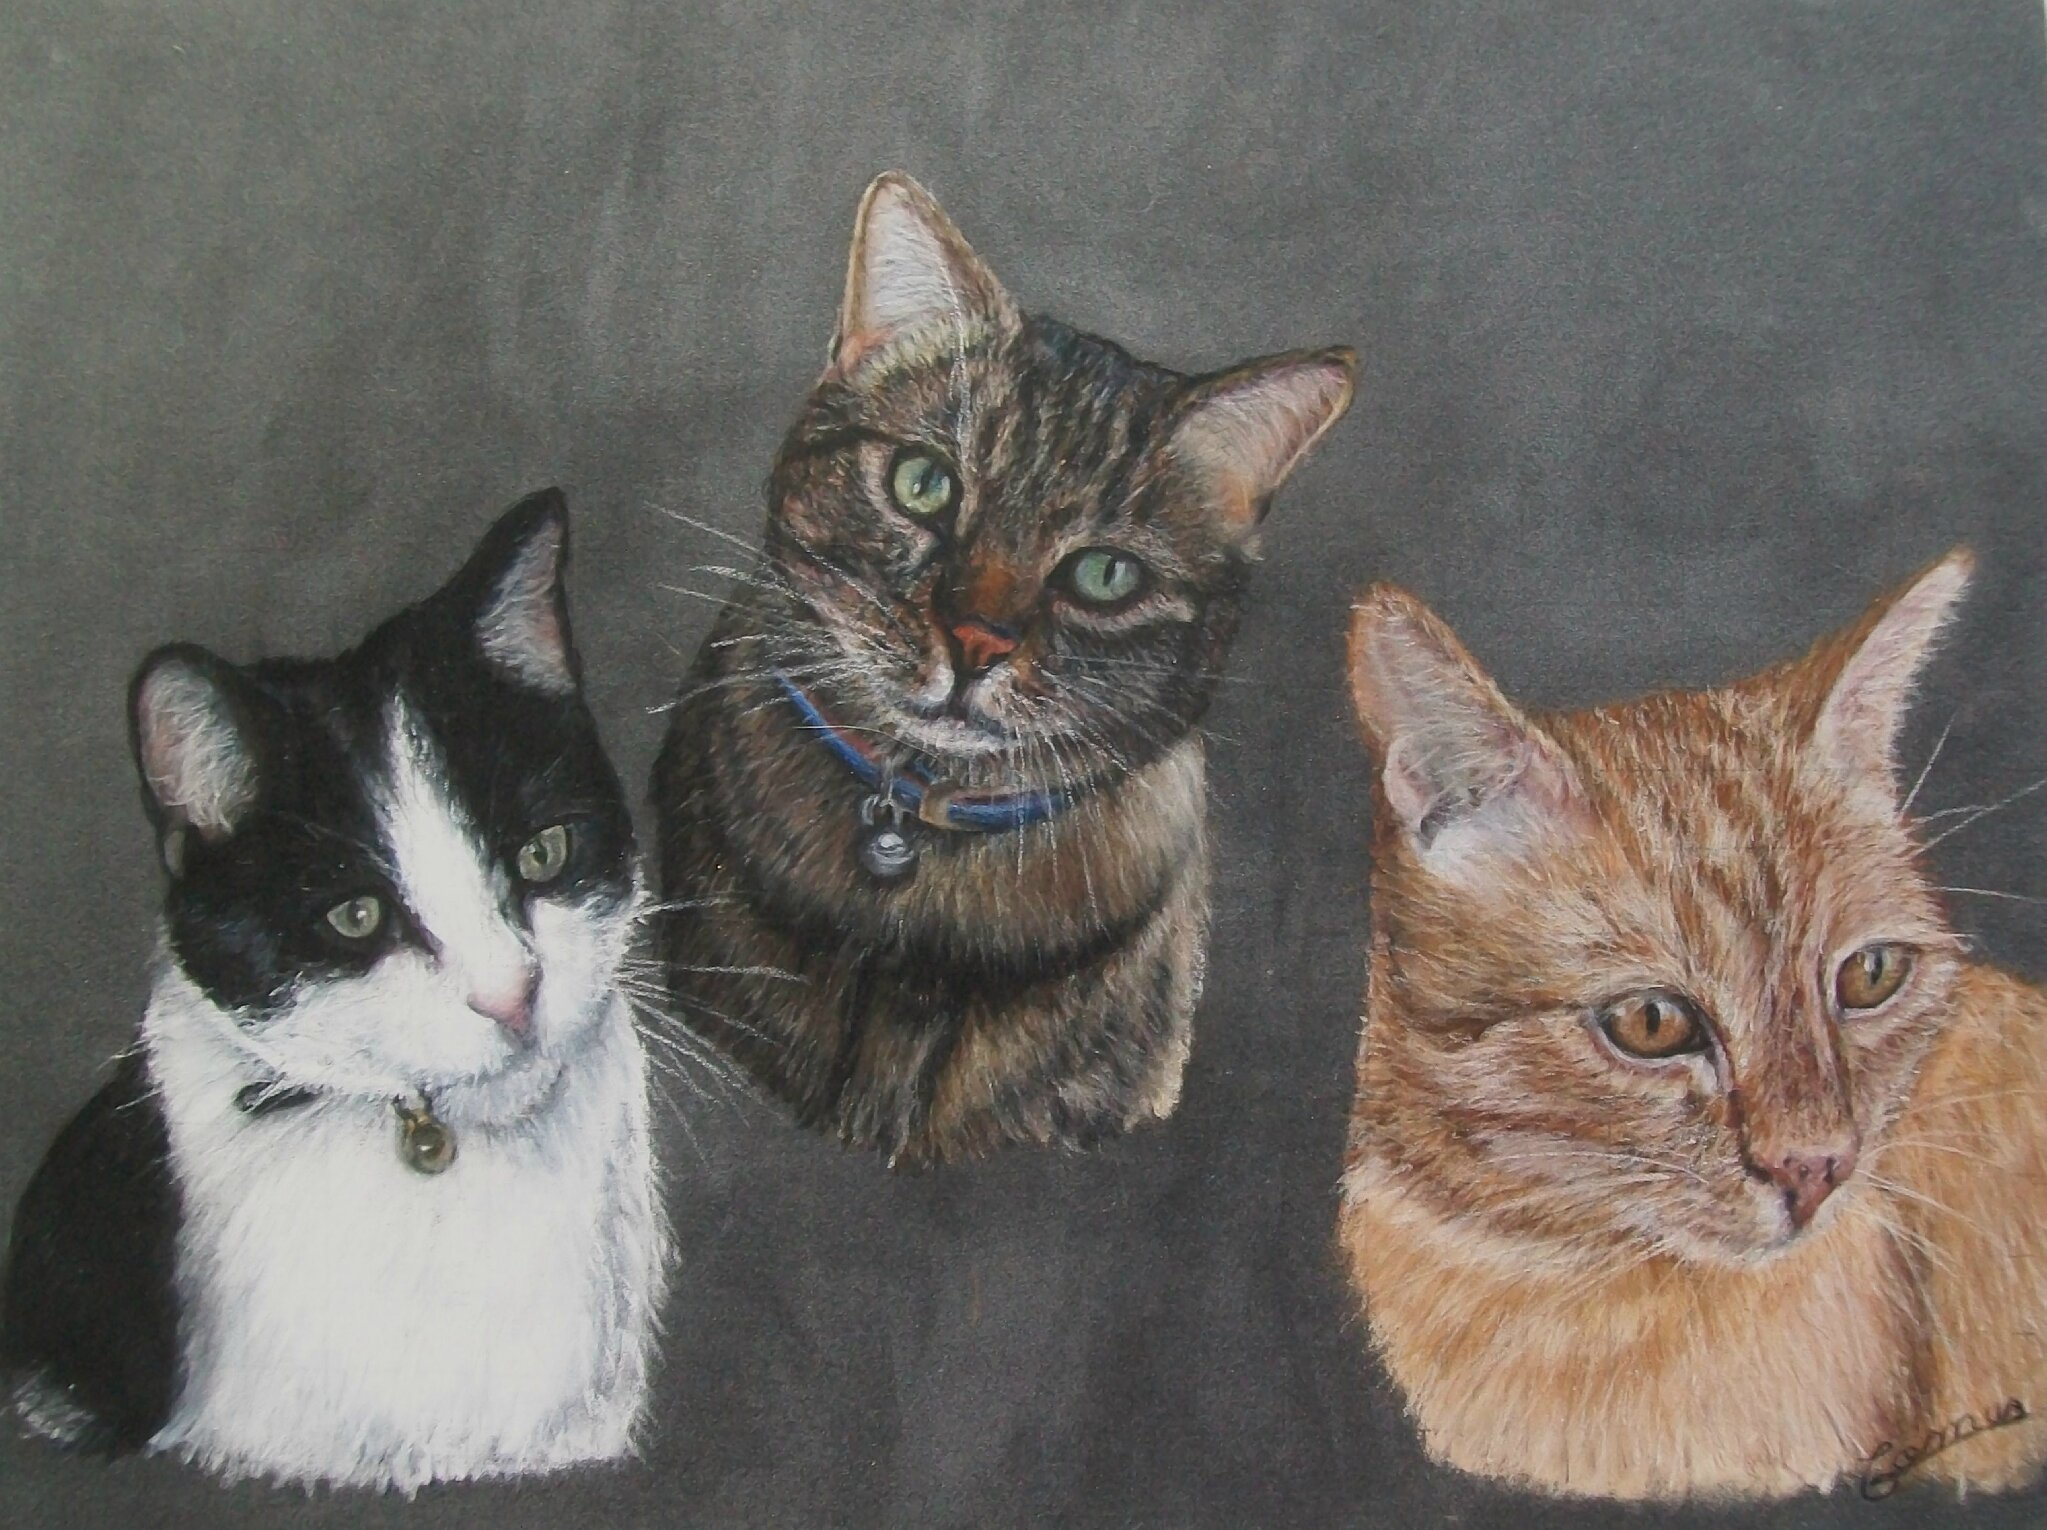 trio de chats au pastel sec sur pastelmat 30 x 40 cm photo de chats isabelle comus peintre. Black Bedroom Furniture Sets. Home Design Ideas